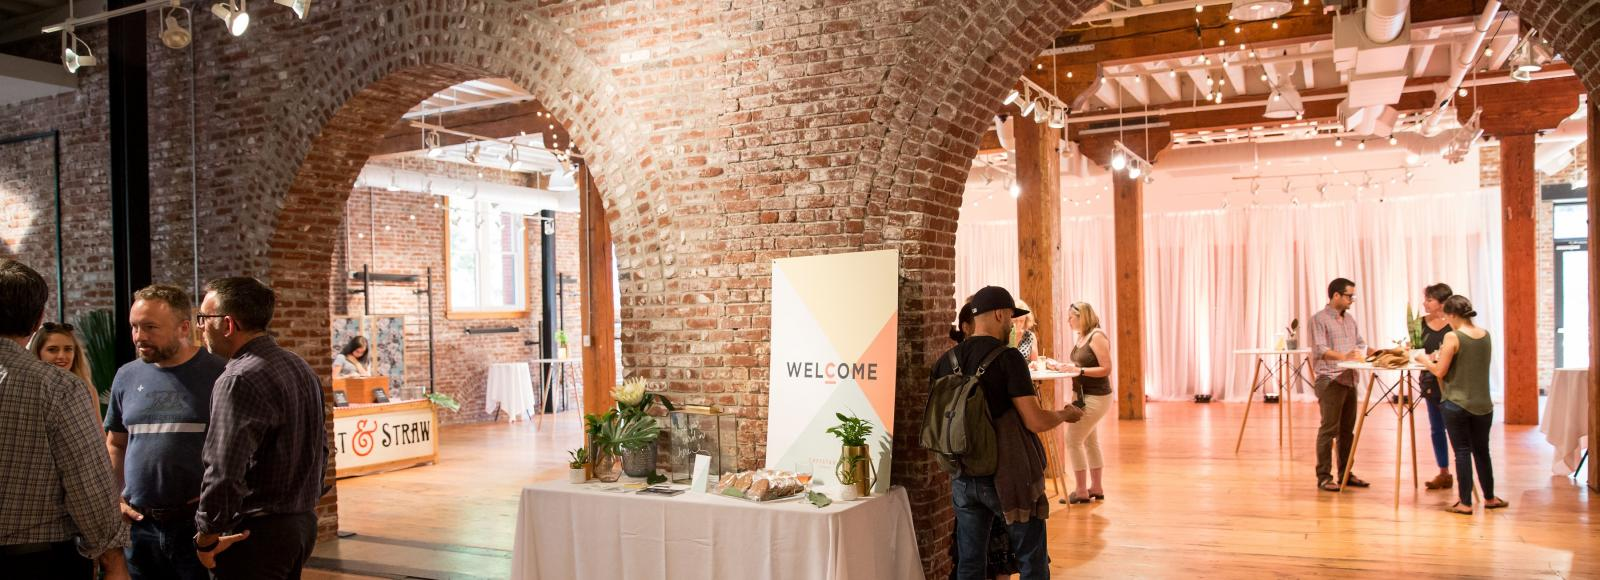 Brick arches in party venue